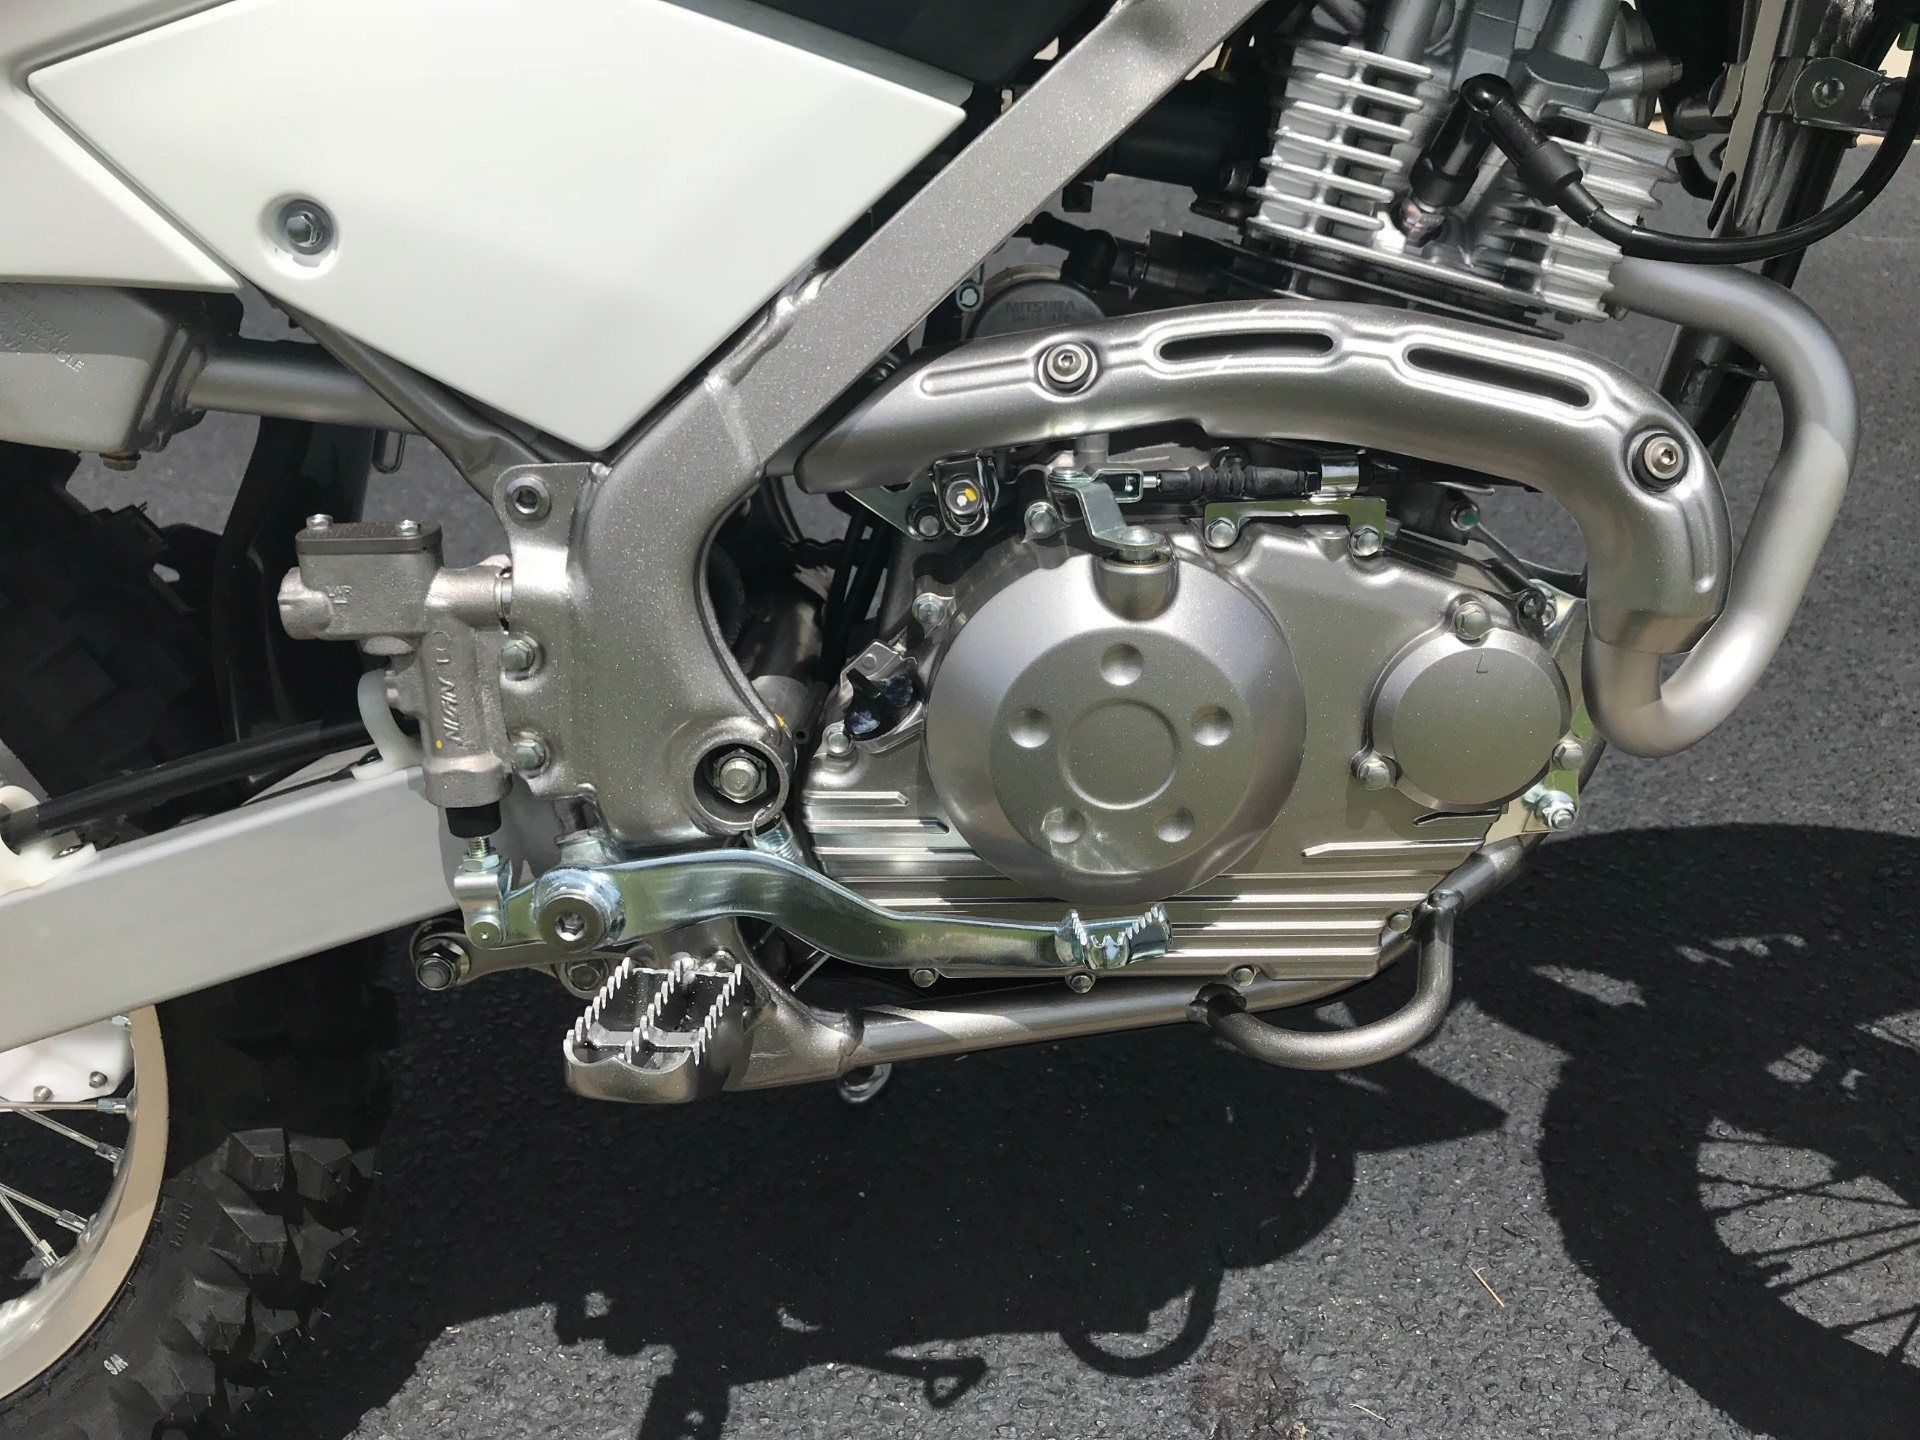 2019 Kawasaki KLX 140G in Greenville, North Carolina - Photo 17